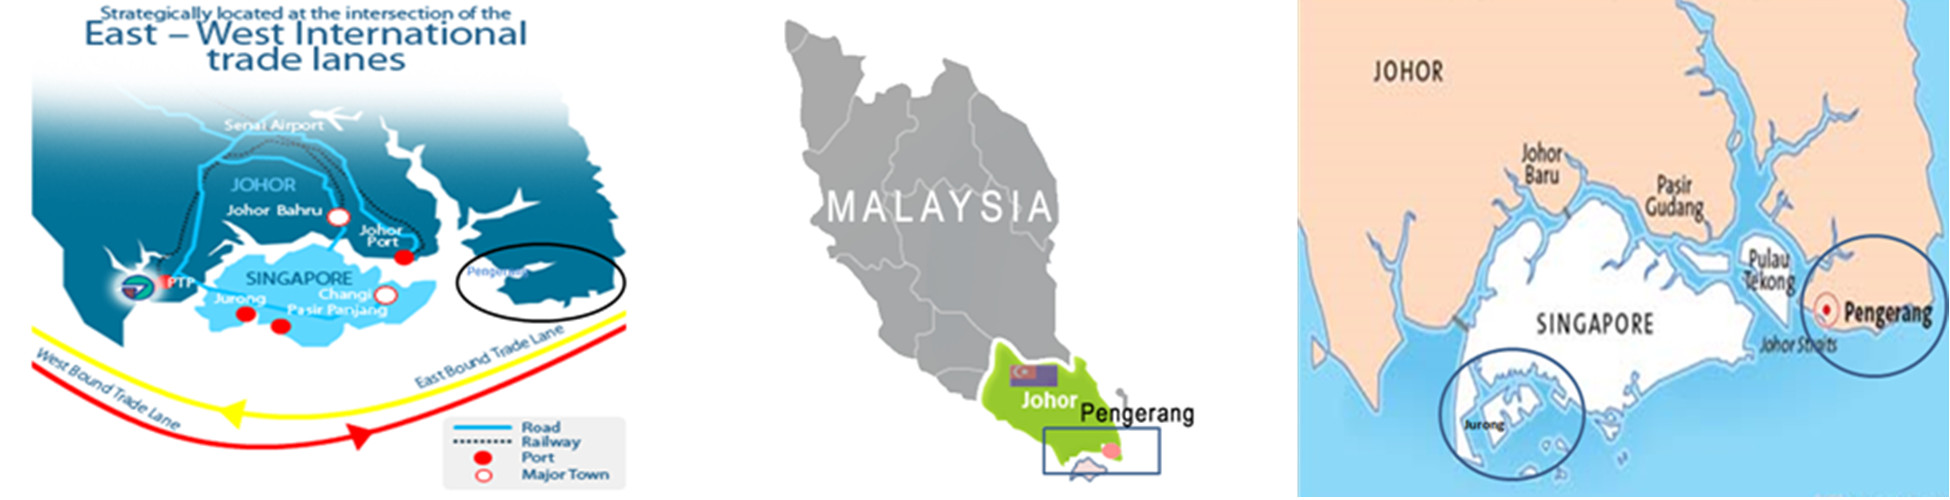 Strategic Location at the South - East tip of Peninsular Malaysia